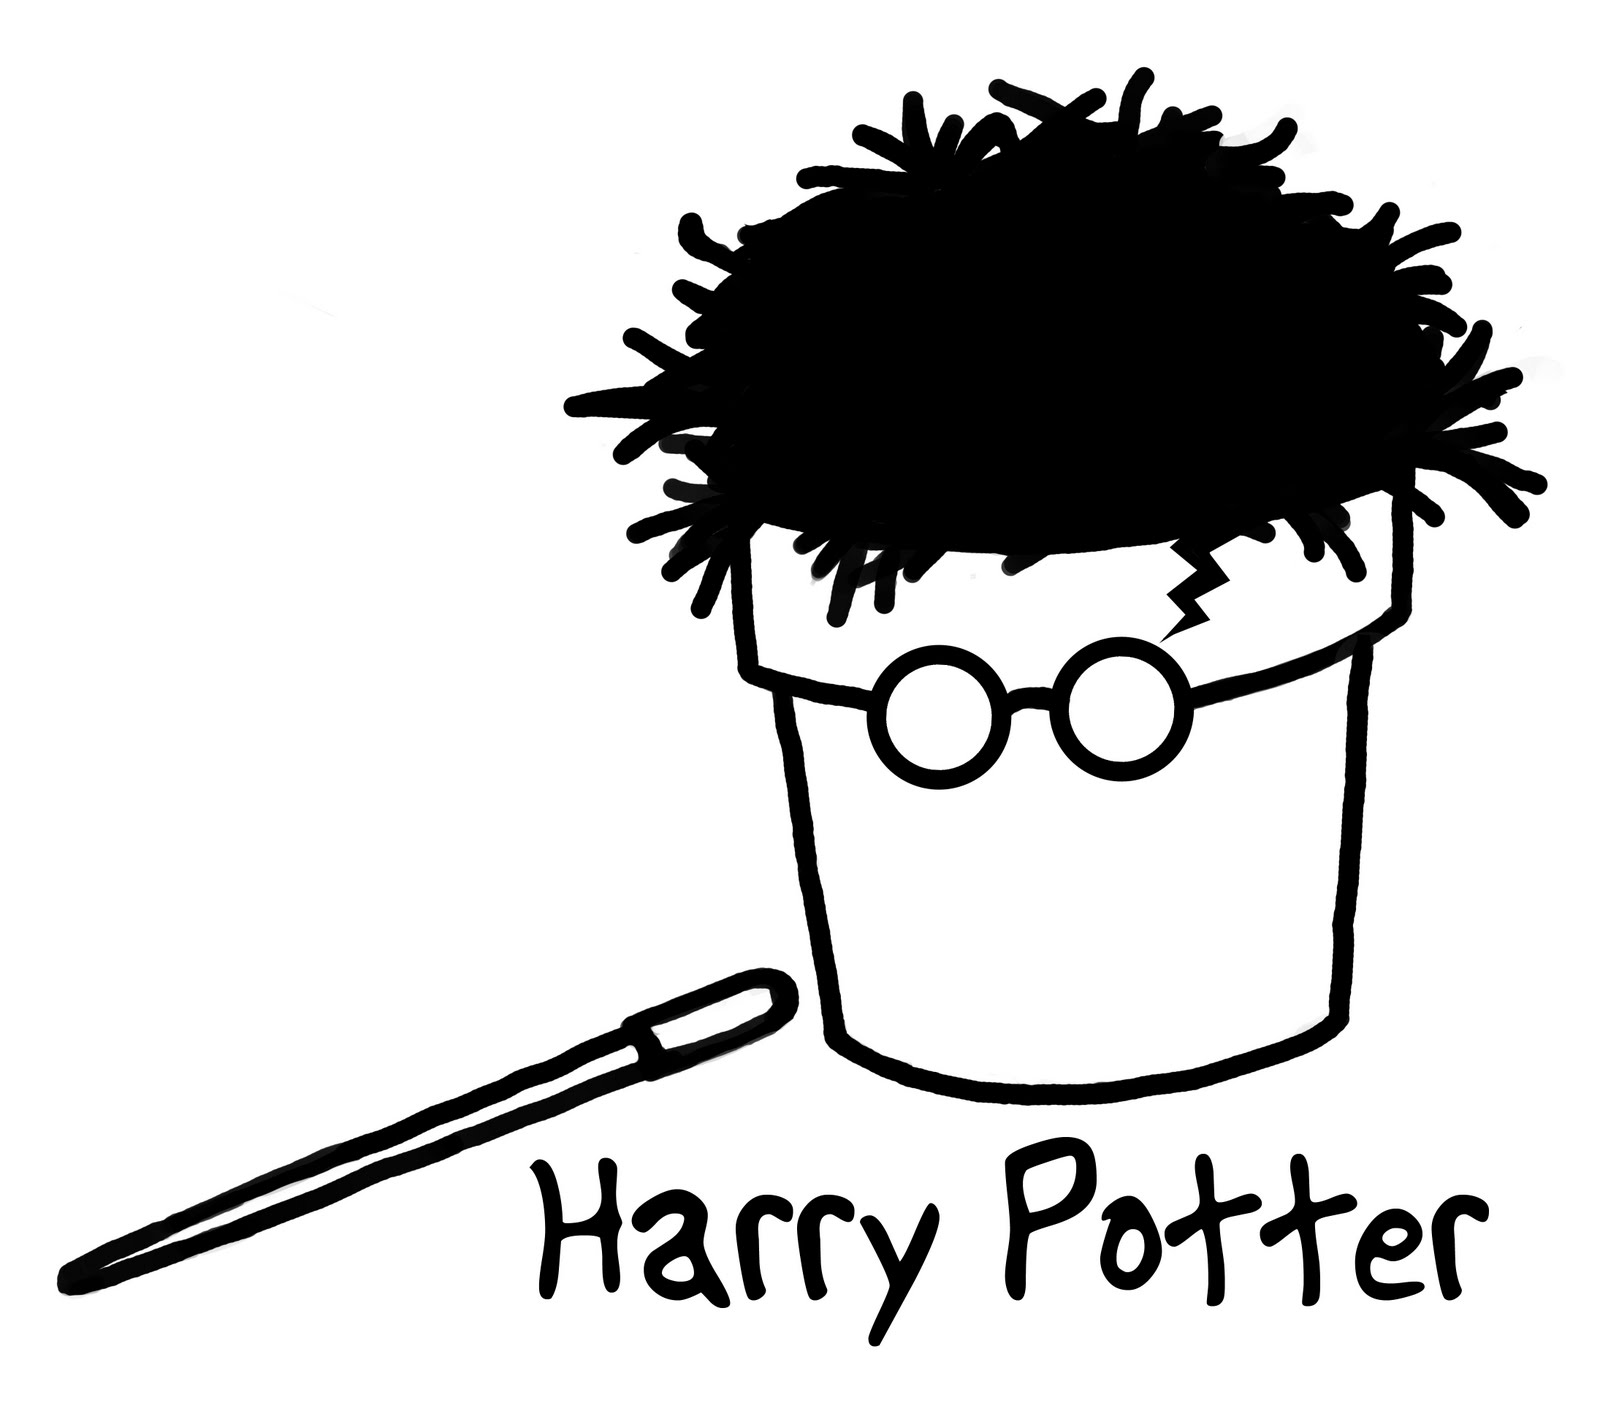 Harry Potter Scar Illustration Pictures To Pin On